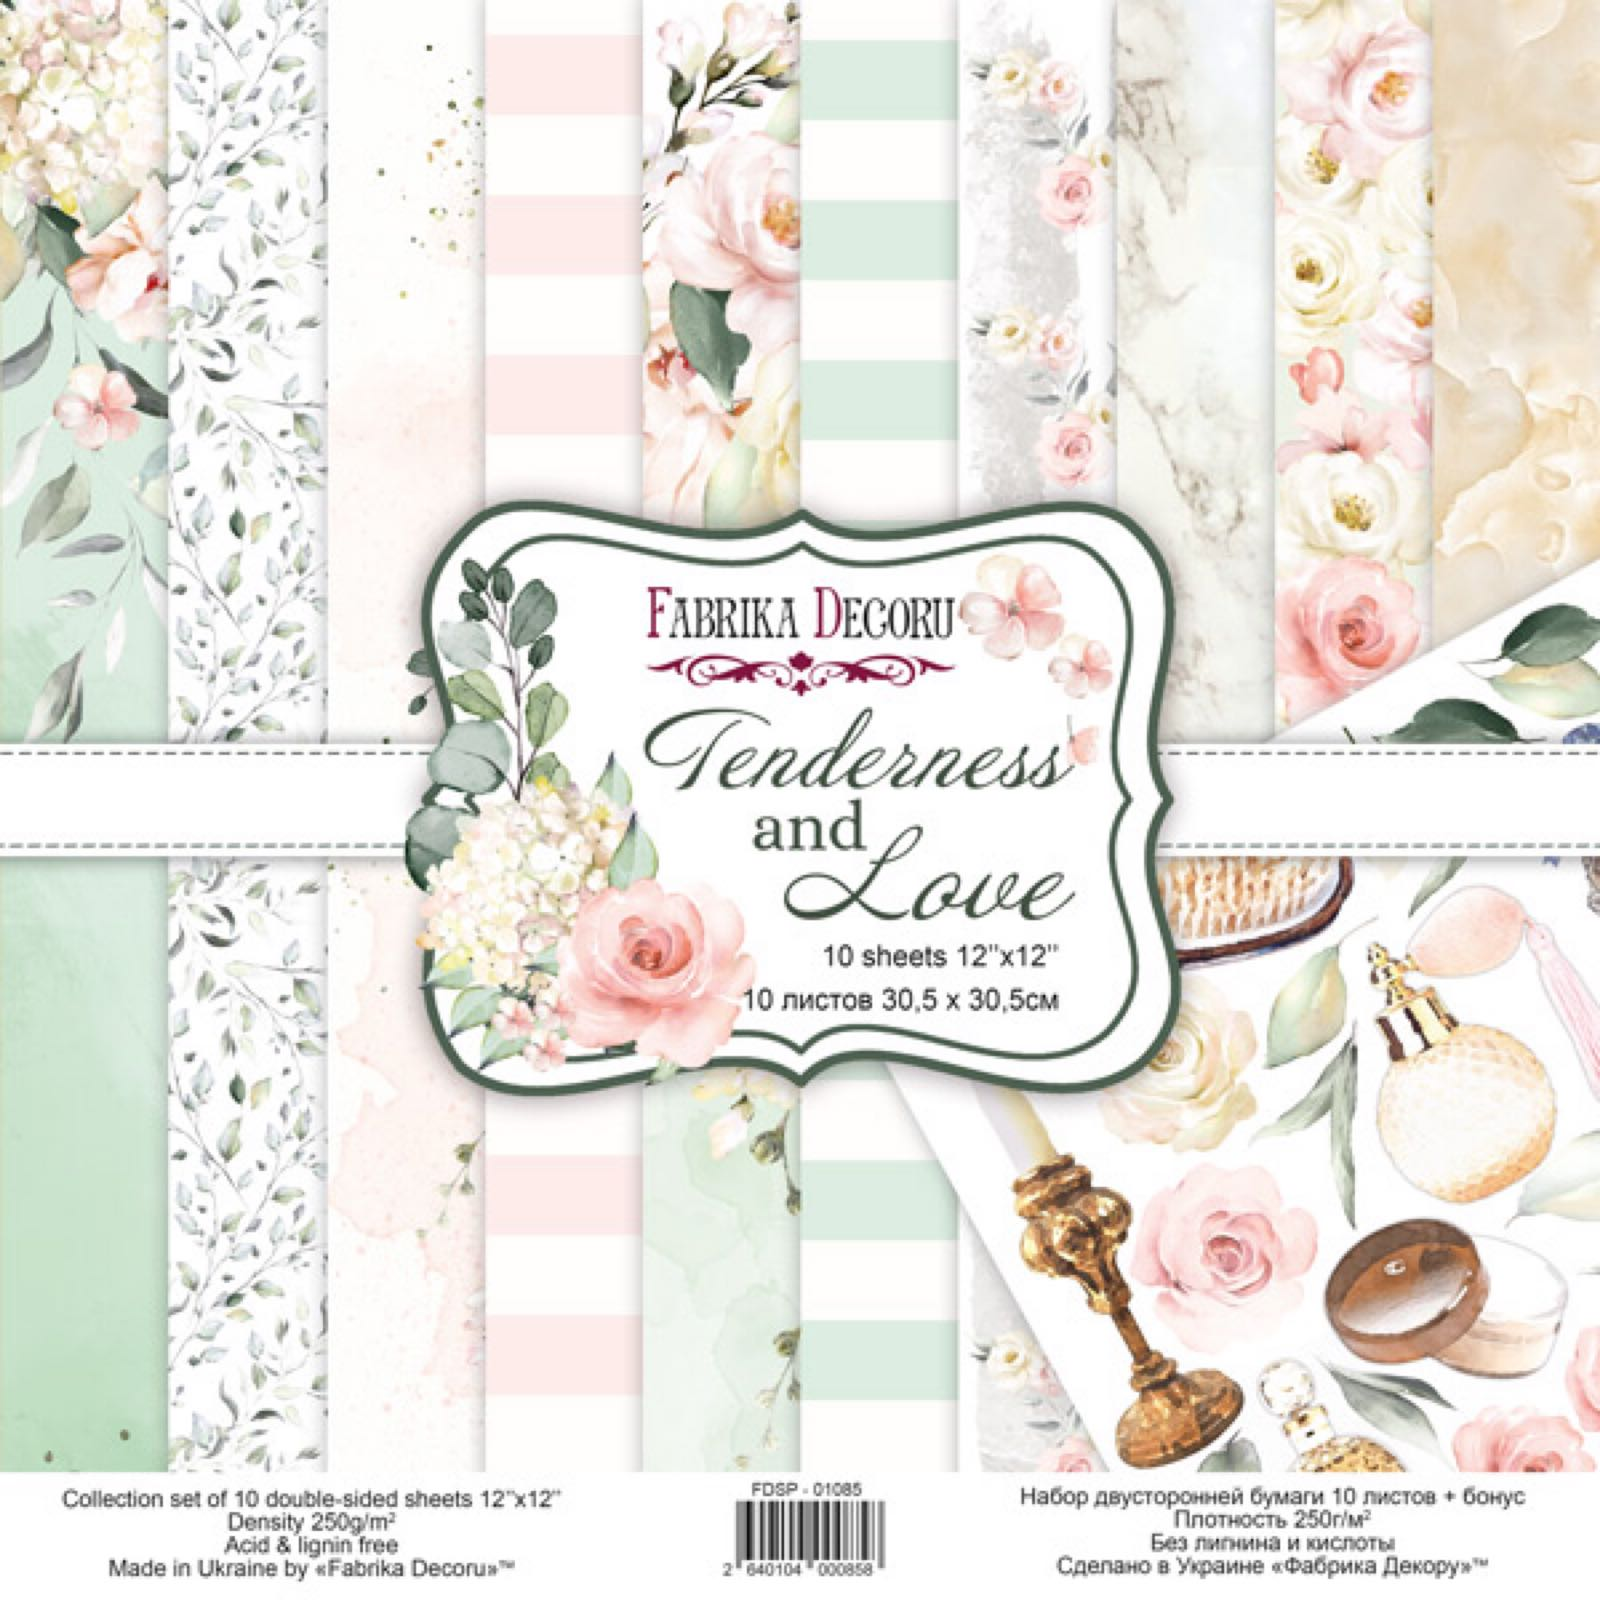 Fabrika decoru 12x12, Tenderness and love collection  paper pack, FDSP-01085